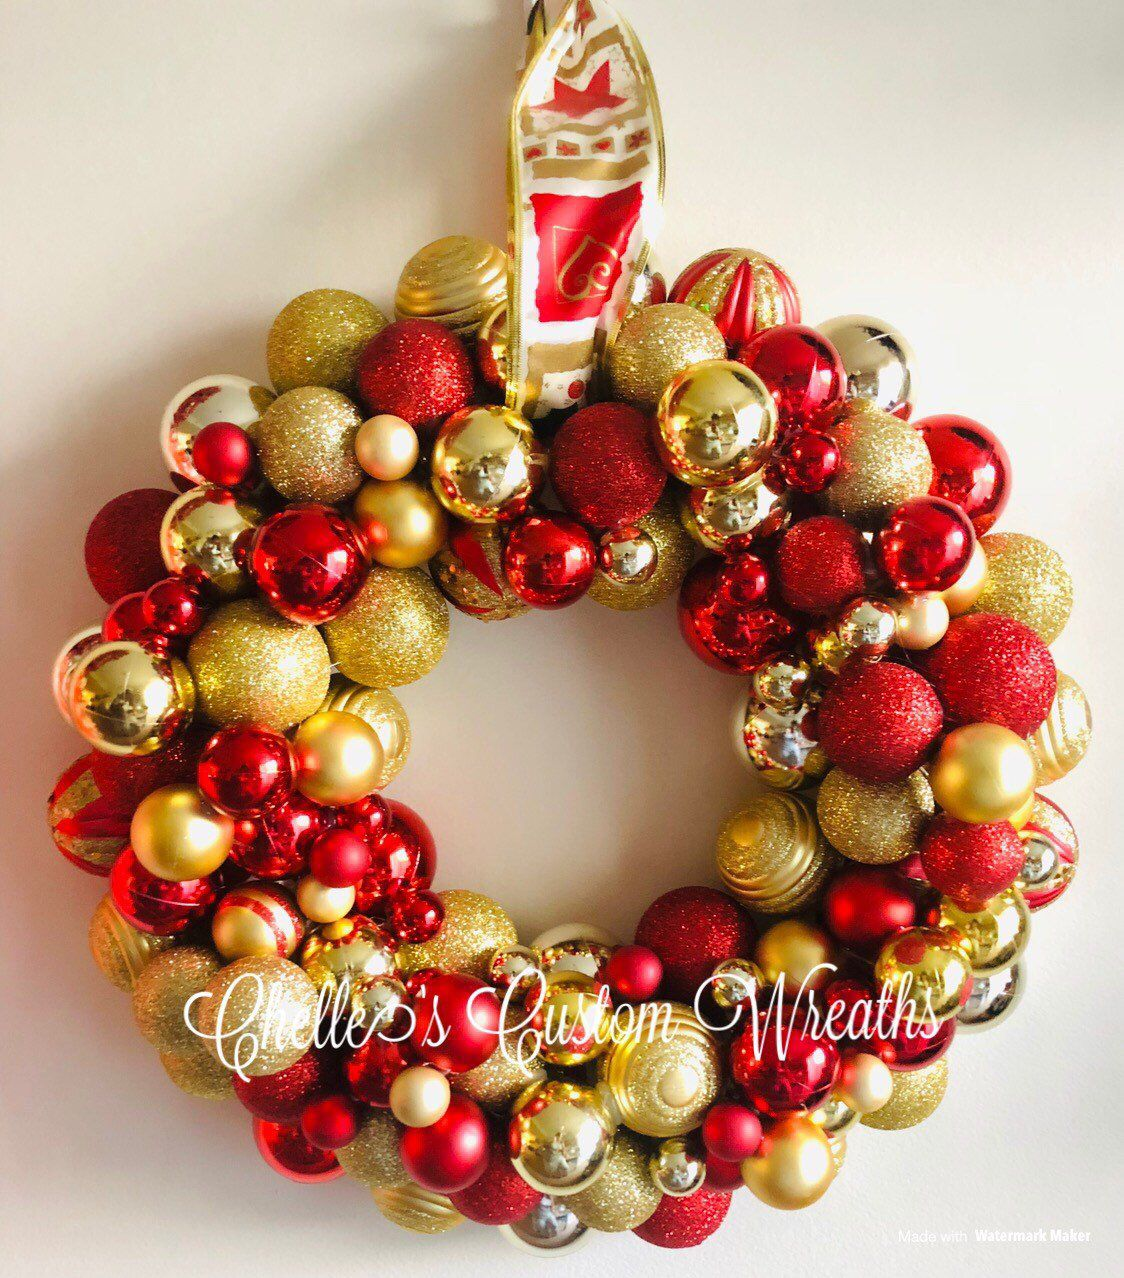 Excited To Share This Item From My Etsy Shop Christmas Ornament Ball Wreath Door Decor Handmade Gi Red Gold Christmas Ball Wreath Christmas Ornament Wreath